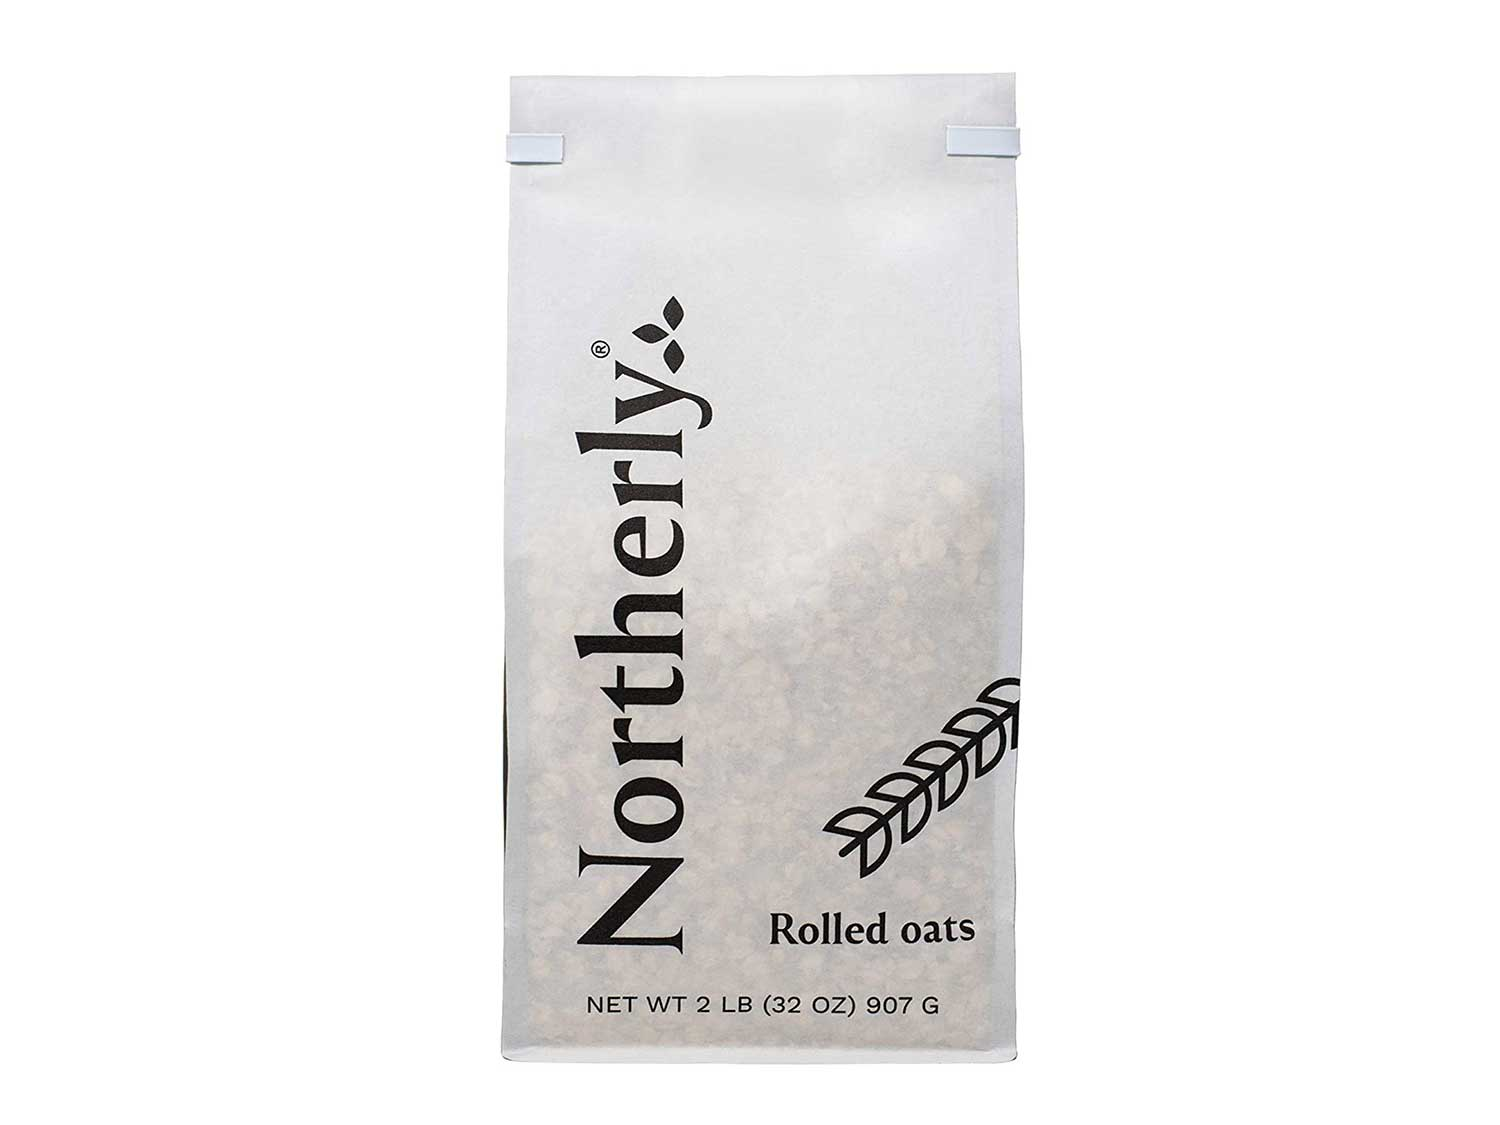 Northerly Farms Rolled Oats ~ Your purchase helps For The Grainer Good Feed The World. Hearty Healthy Delicious Easy Rolled Oats (2LB Bag)